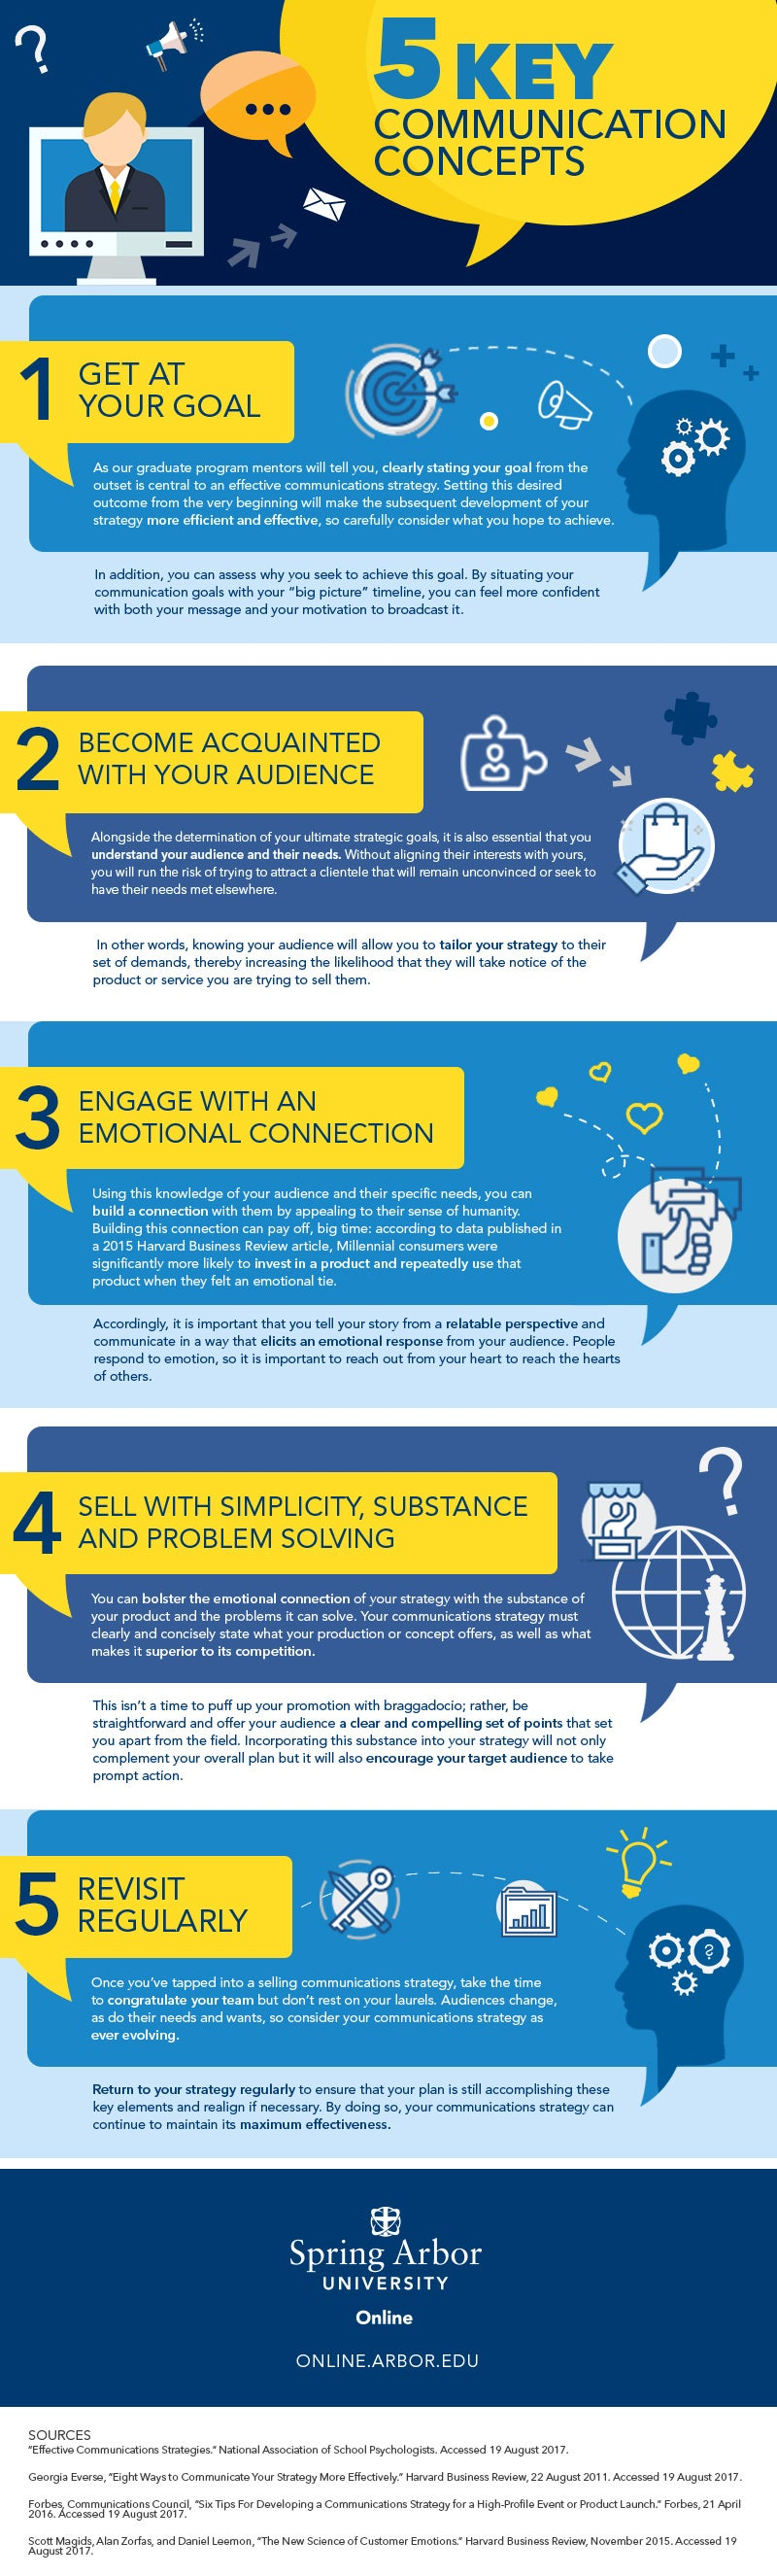 key communication tips infographic